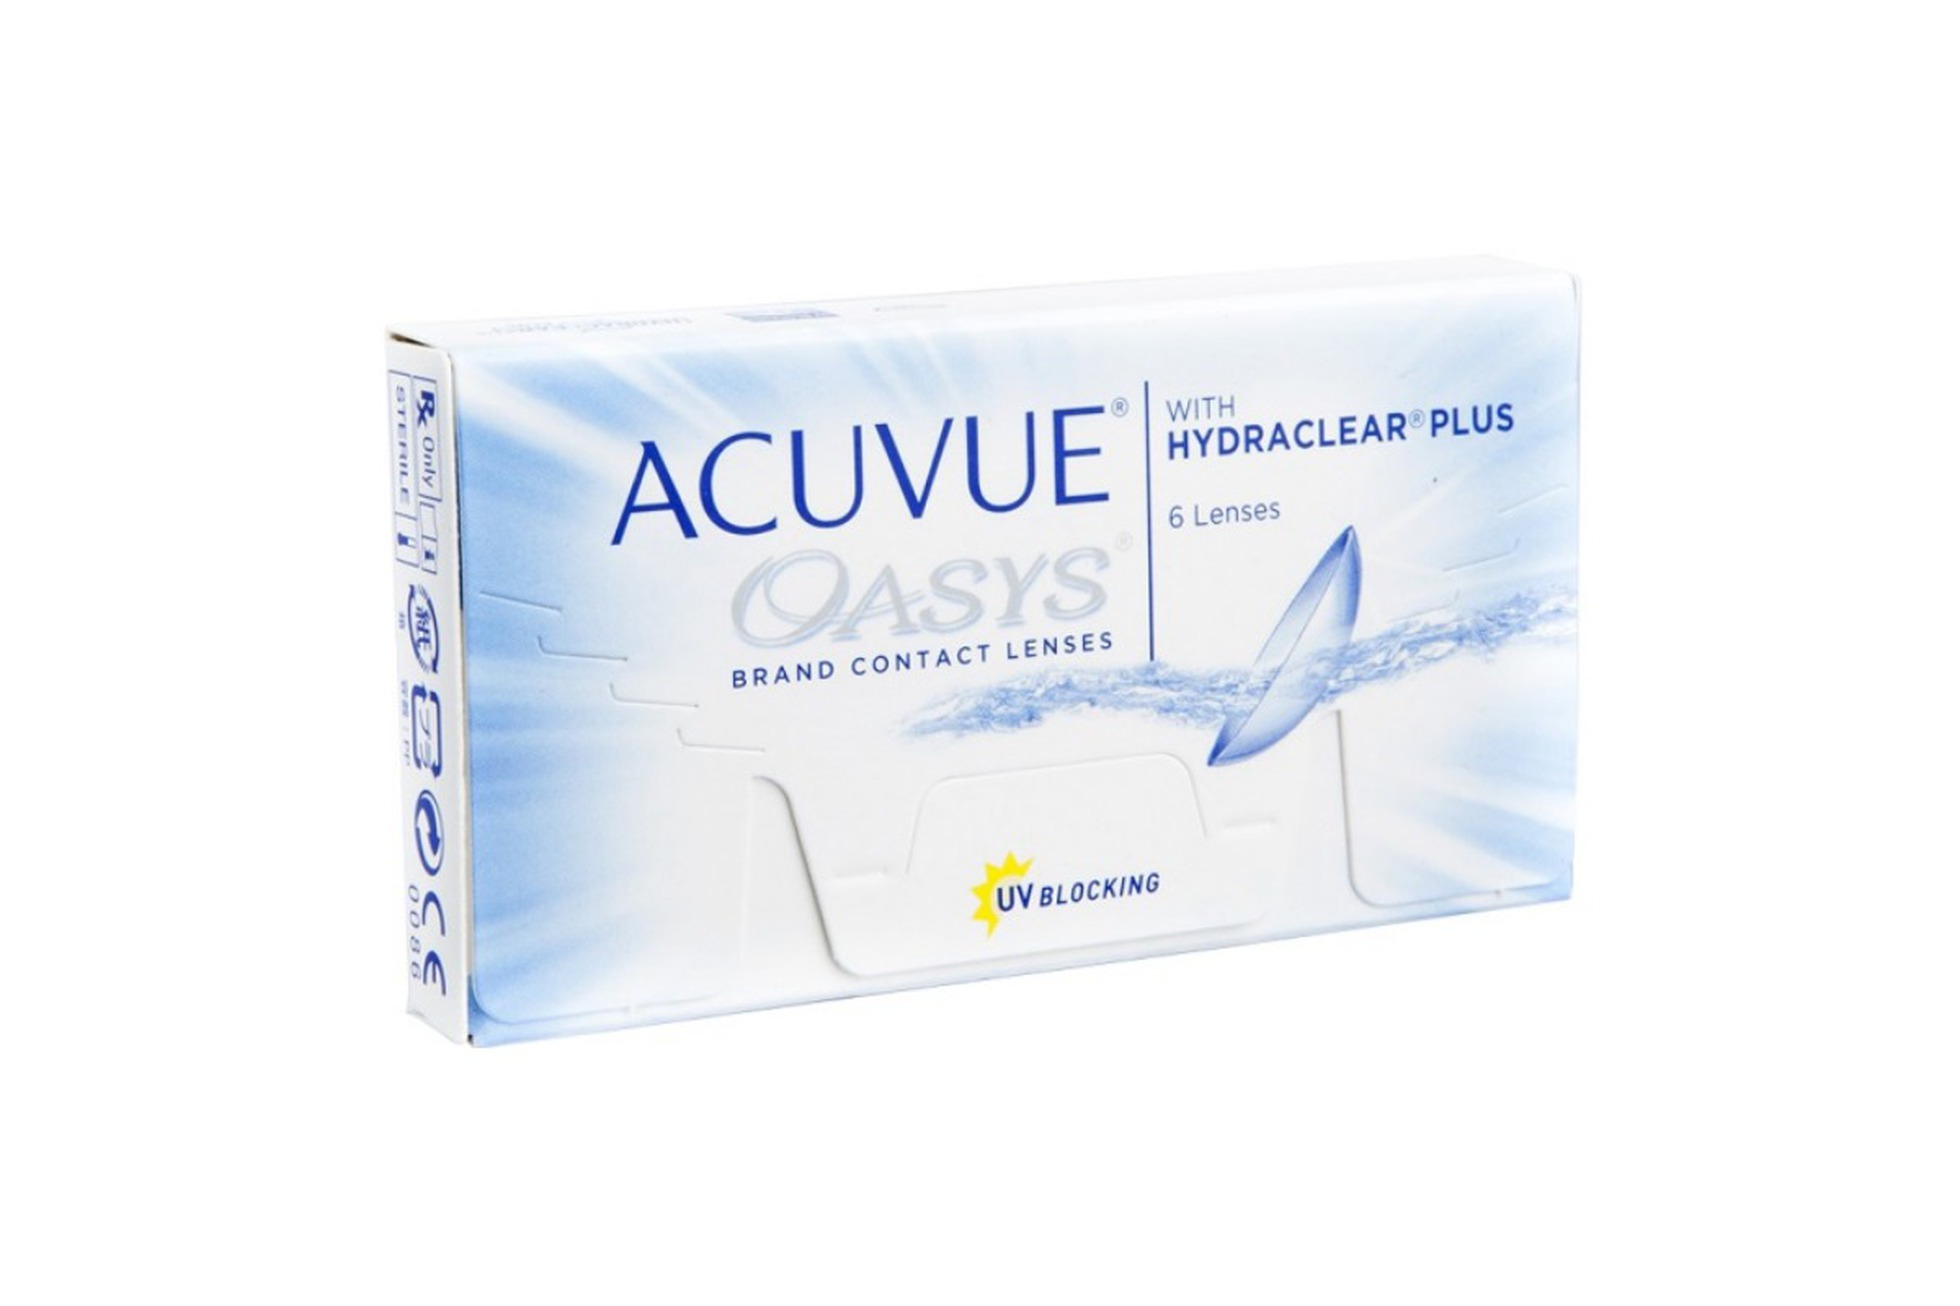 Acuvue Oasys with Hydraclear Plus уп. 6шт